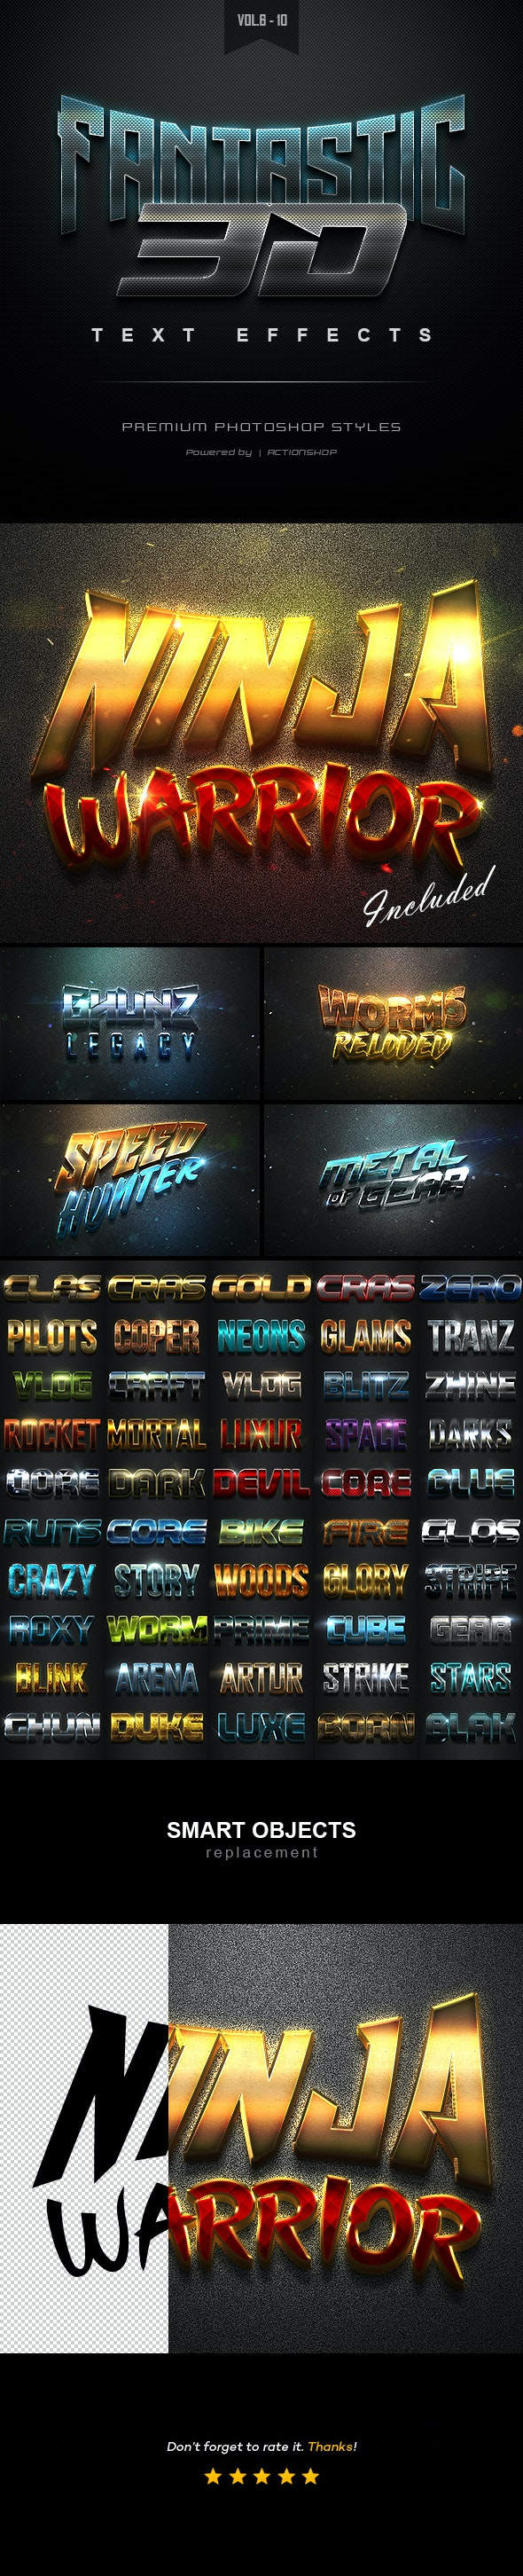 3D Text Effects Bundle Two - Text Effects Styles